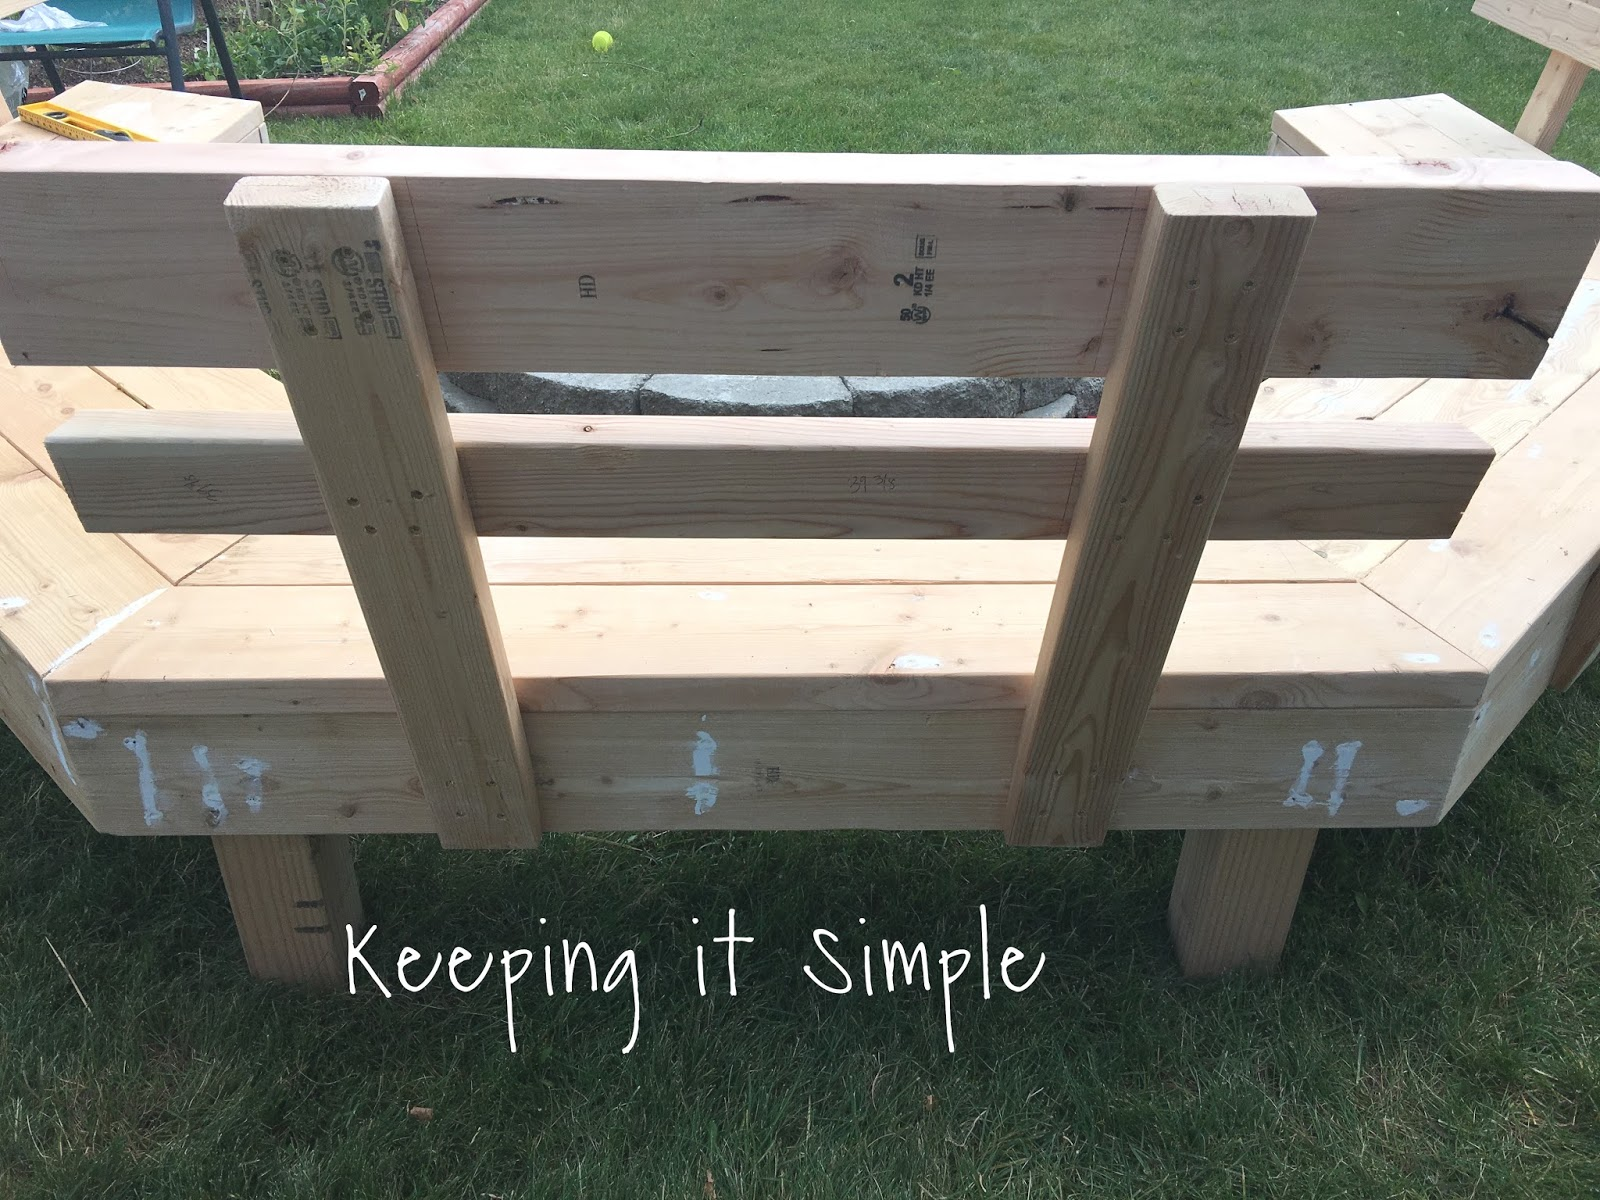 Diy Fire Pit Bench With Step By Step Insructions Keeping It Simple Crafts